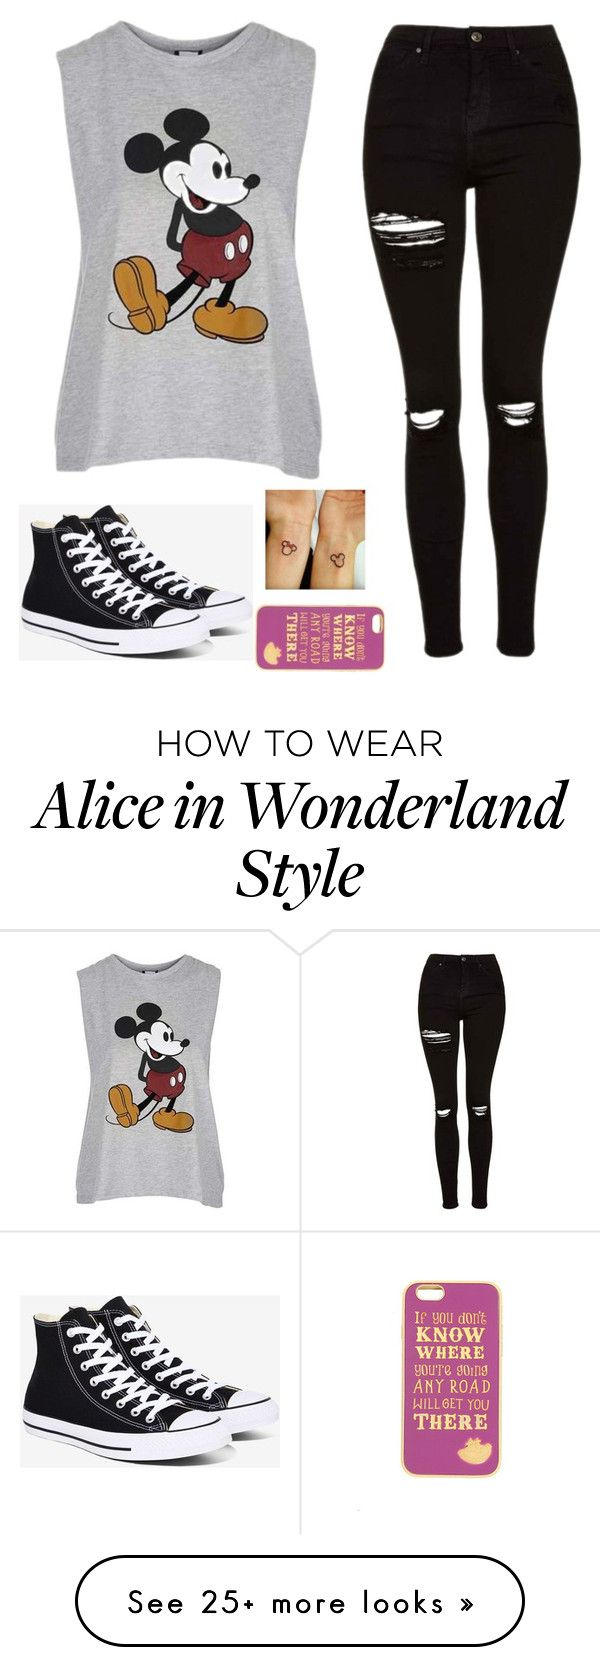 17 Best ideas about Disneyland Outfits on Pinterest ...